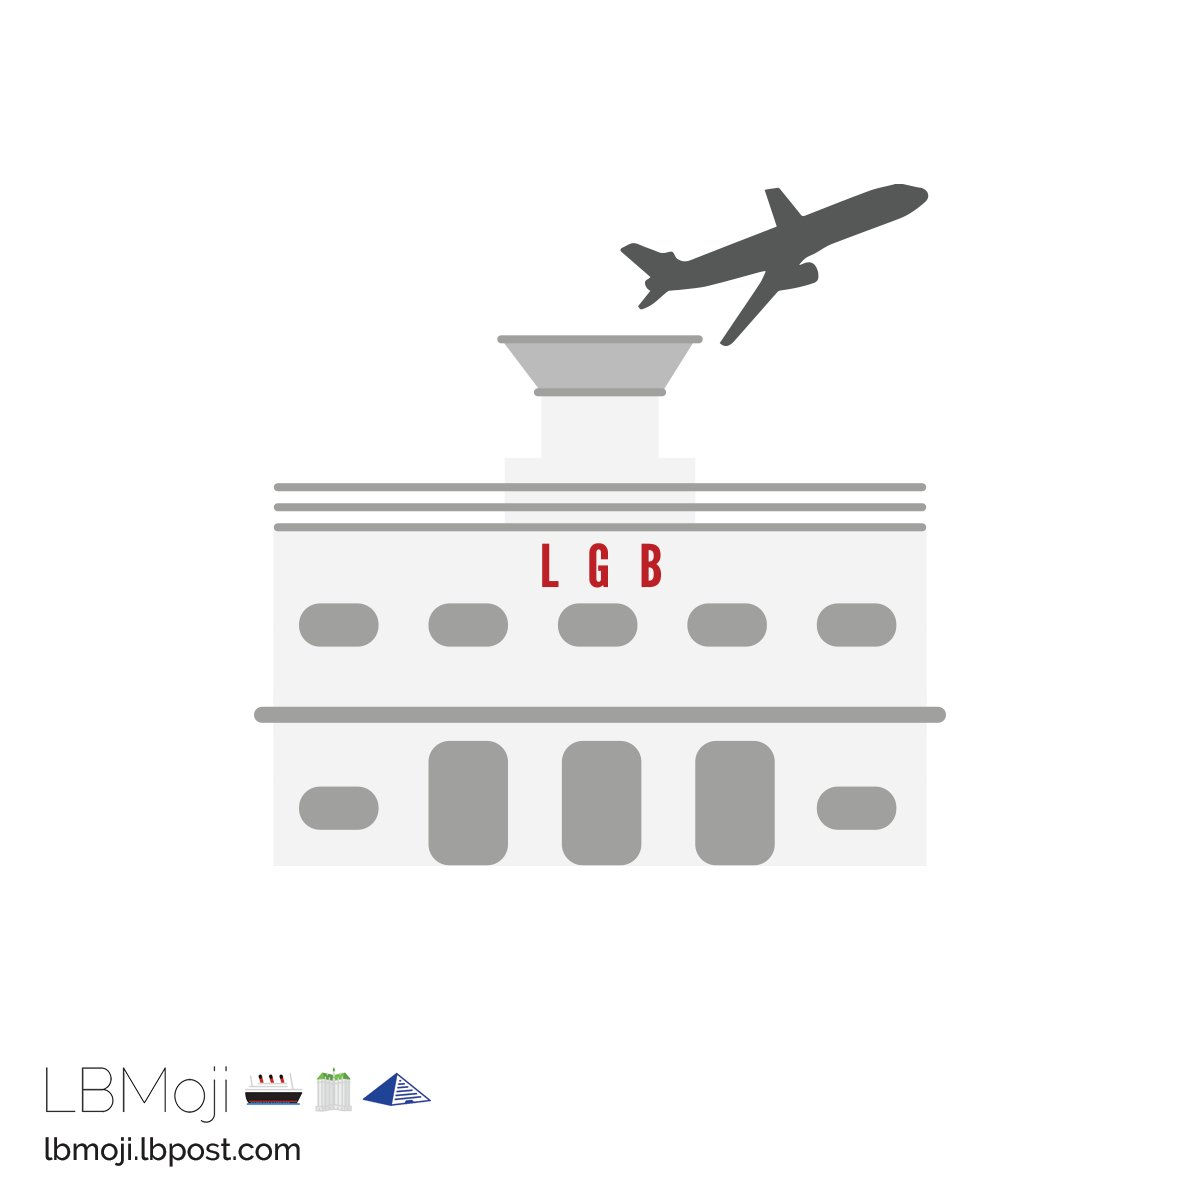 TRIVIA: The 1st GIF, a flying airplane, is 30 years old today. Download @LBAirport and the rest of the LBMojis 👉 https://t.co/3GGaA3LRY0 https://t.co/lxYM7NXa6a